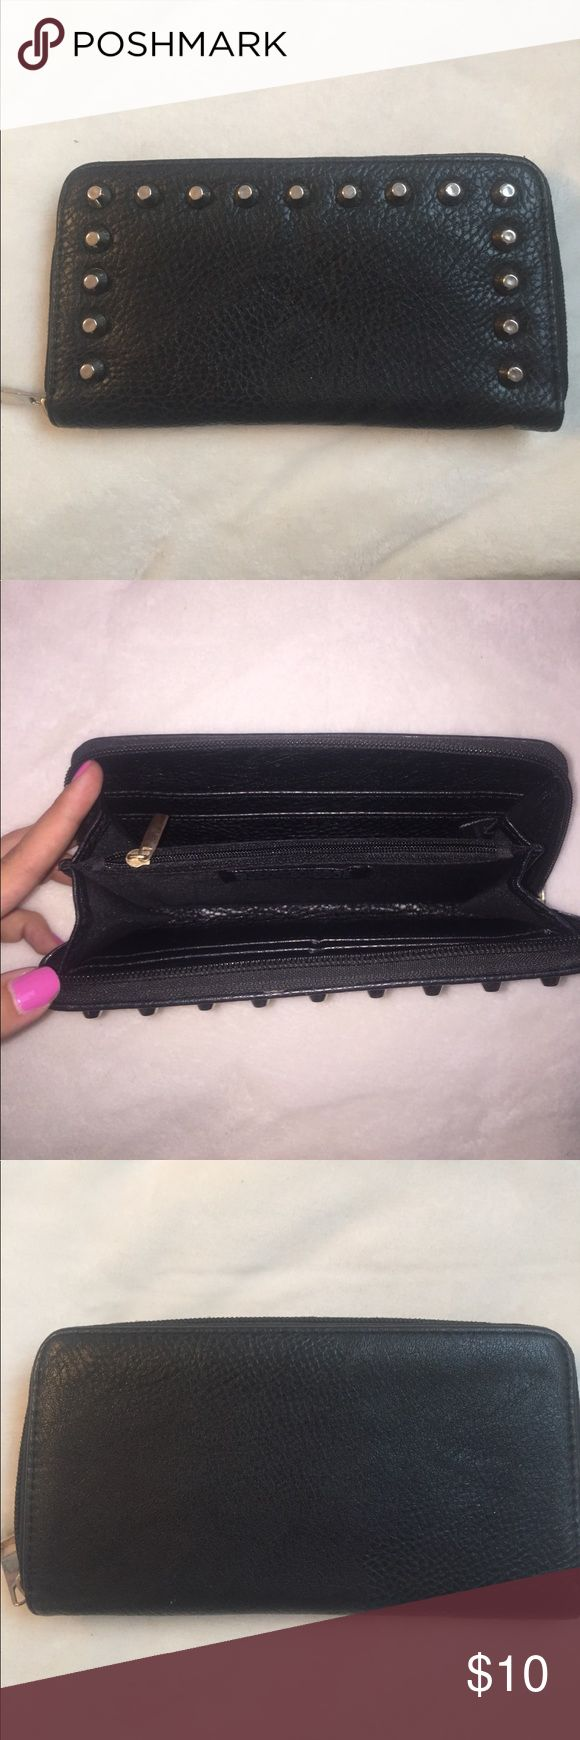 Deena & Ozzy black studded wallet Deena & Ozzy black studded wallet. Good condition. Deena & Ozzy Bags Wallets